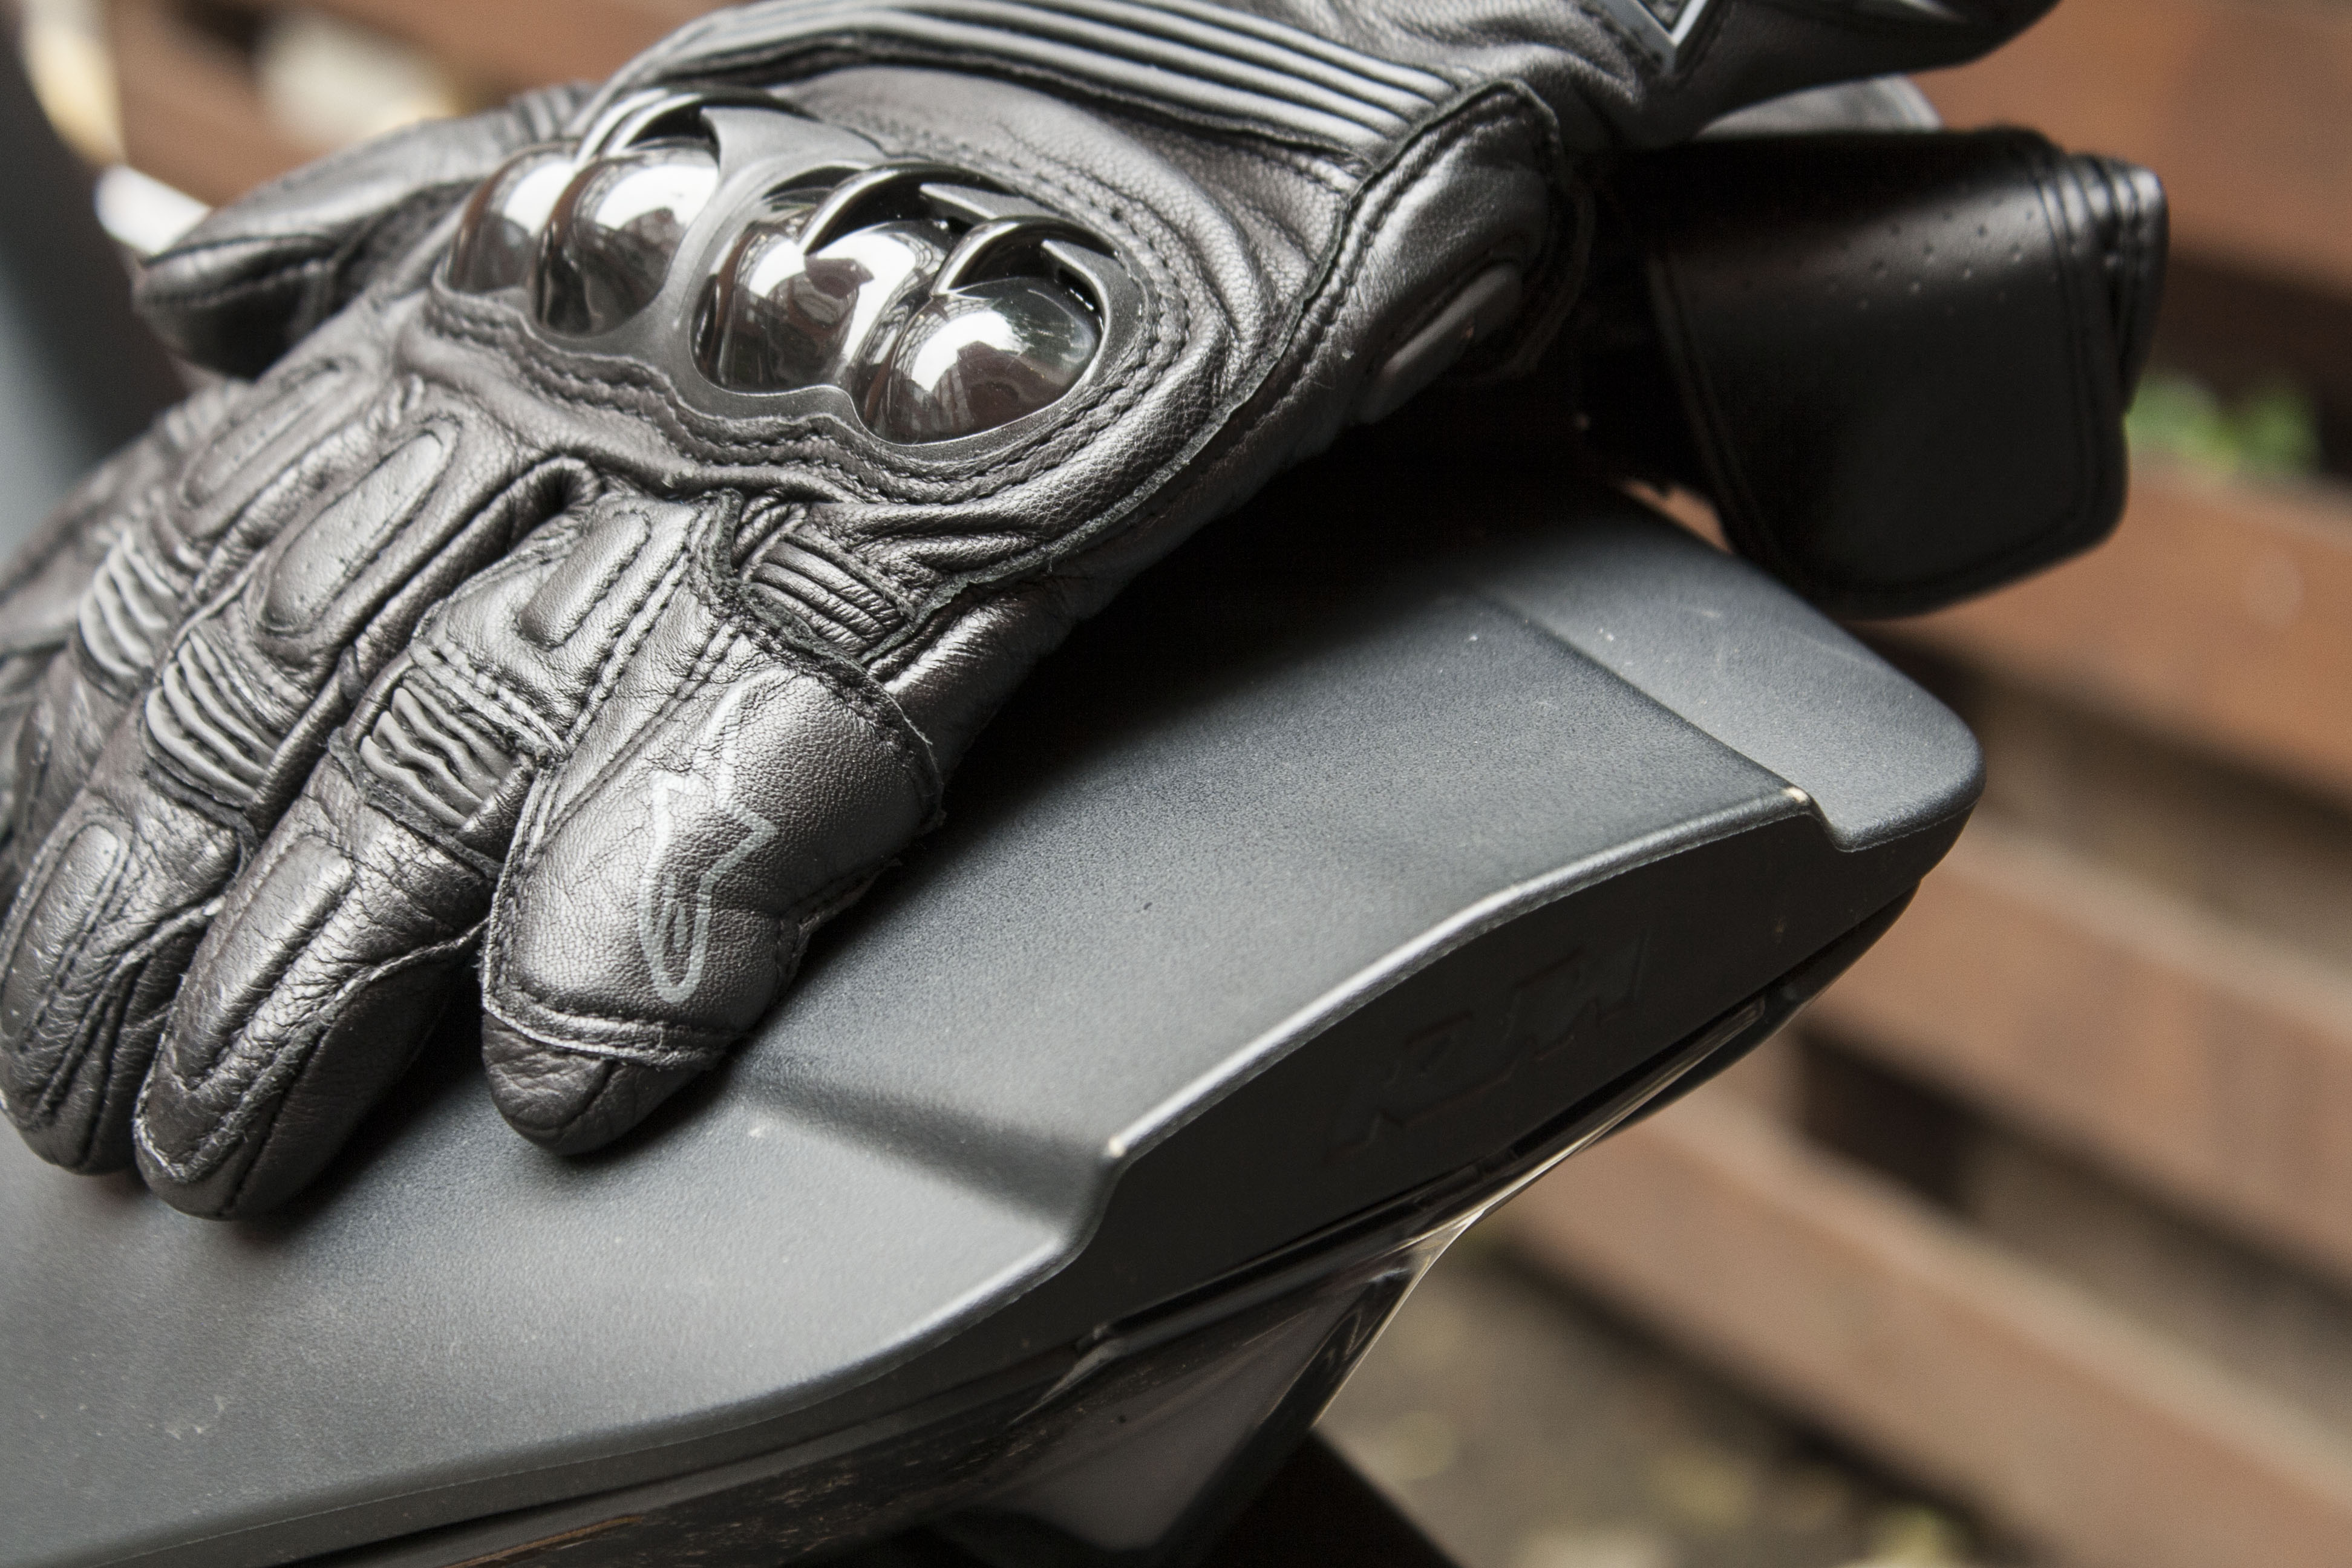 Xtrafit motorcycle gloves - Best Winter Motorcycle Gloves